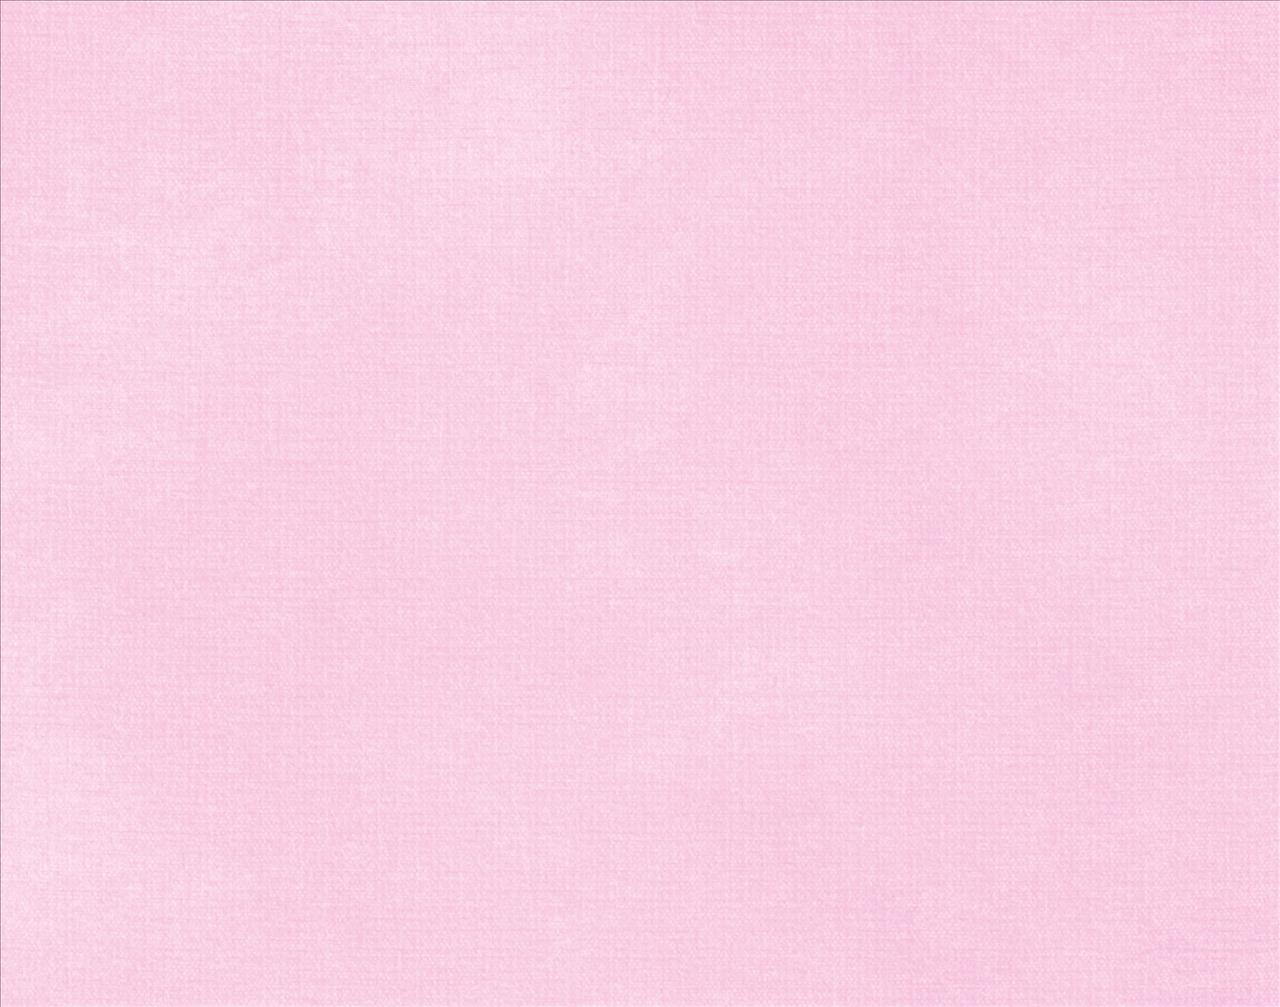 pale pink color background - photo #26